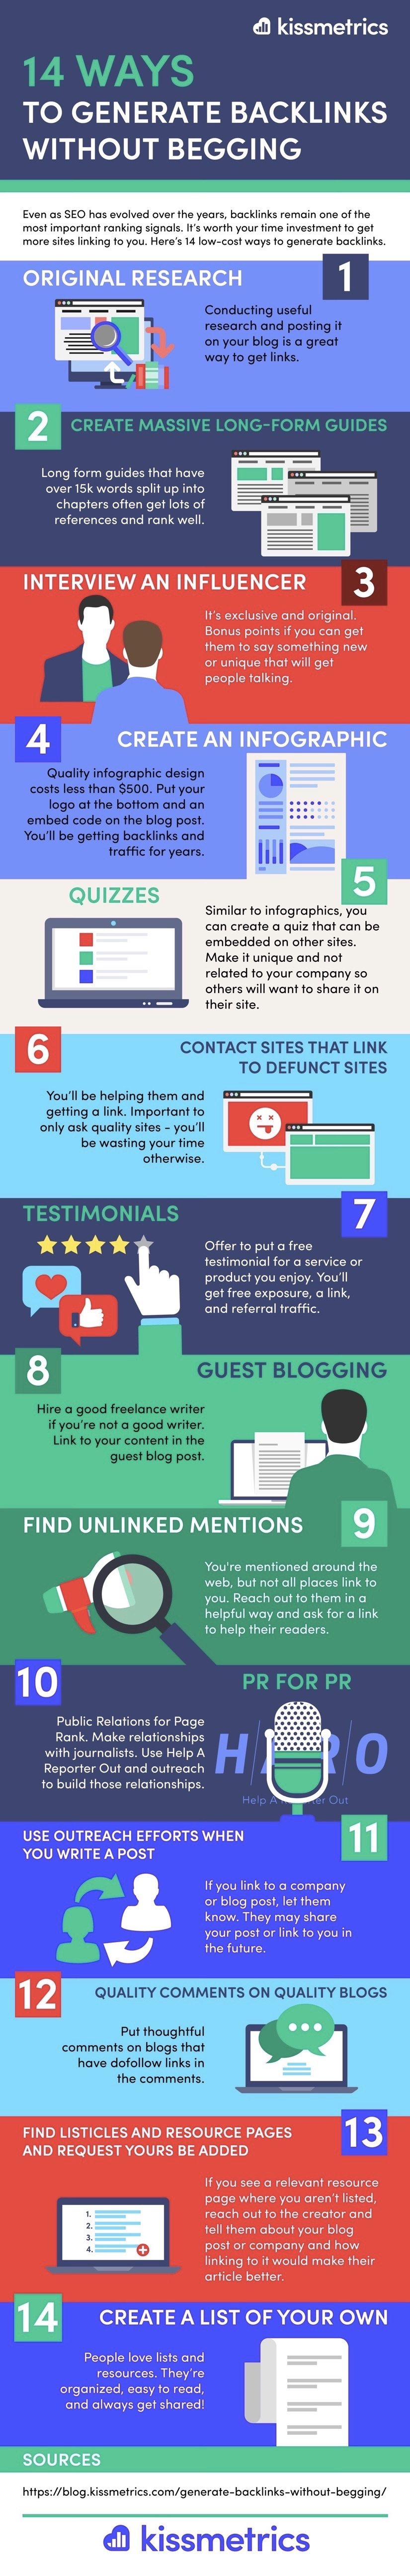 14 Ways to Earn Backlinks Without Begging [Infographic]